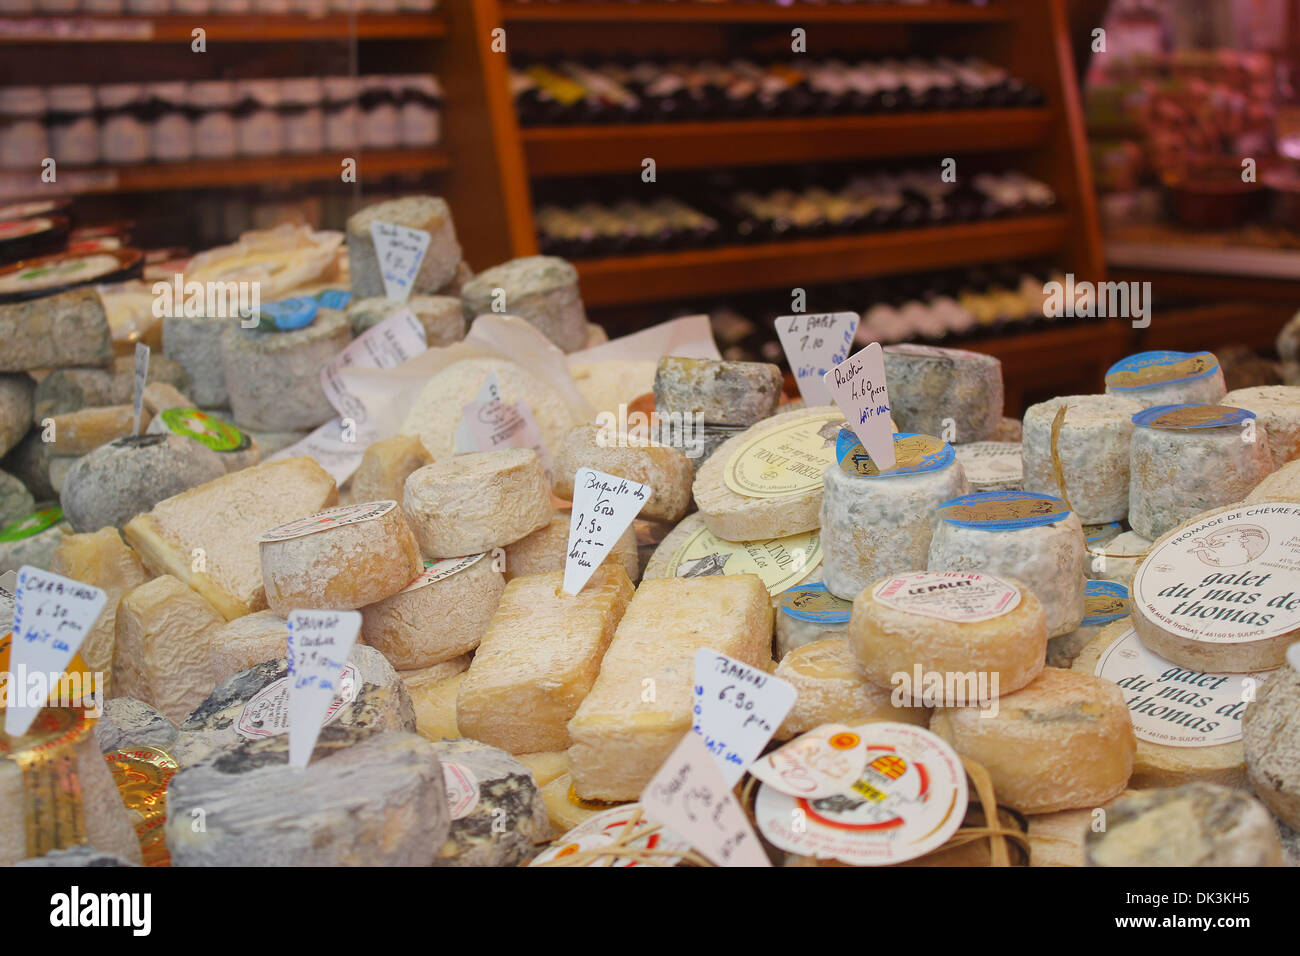 Wine and Cheese Shop - French Wine and Cheese Shop in Paris - Stock Image